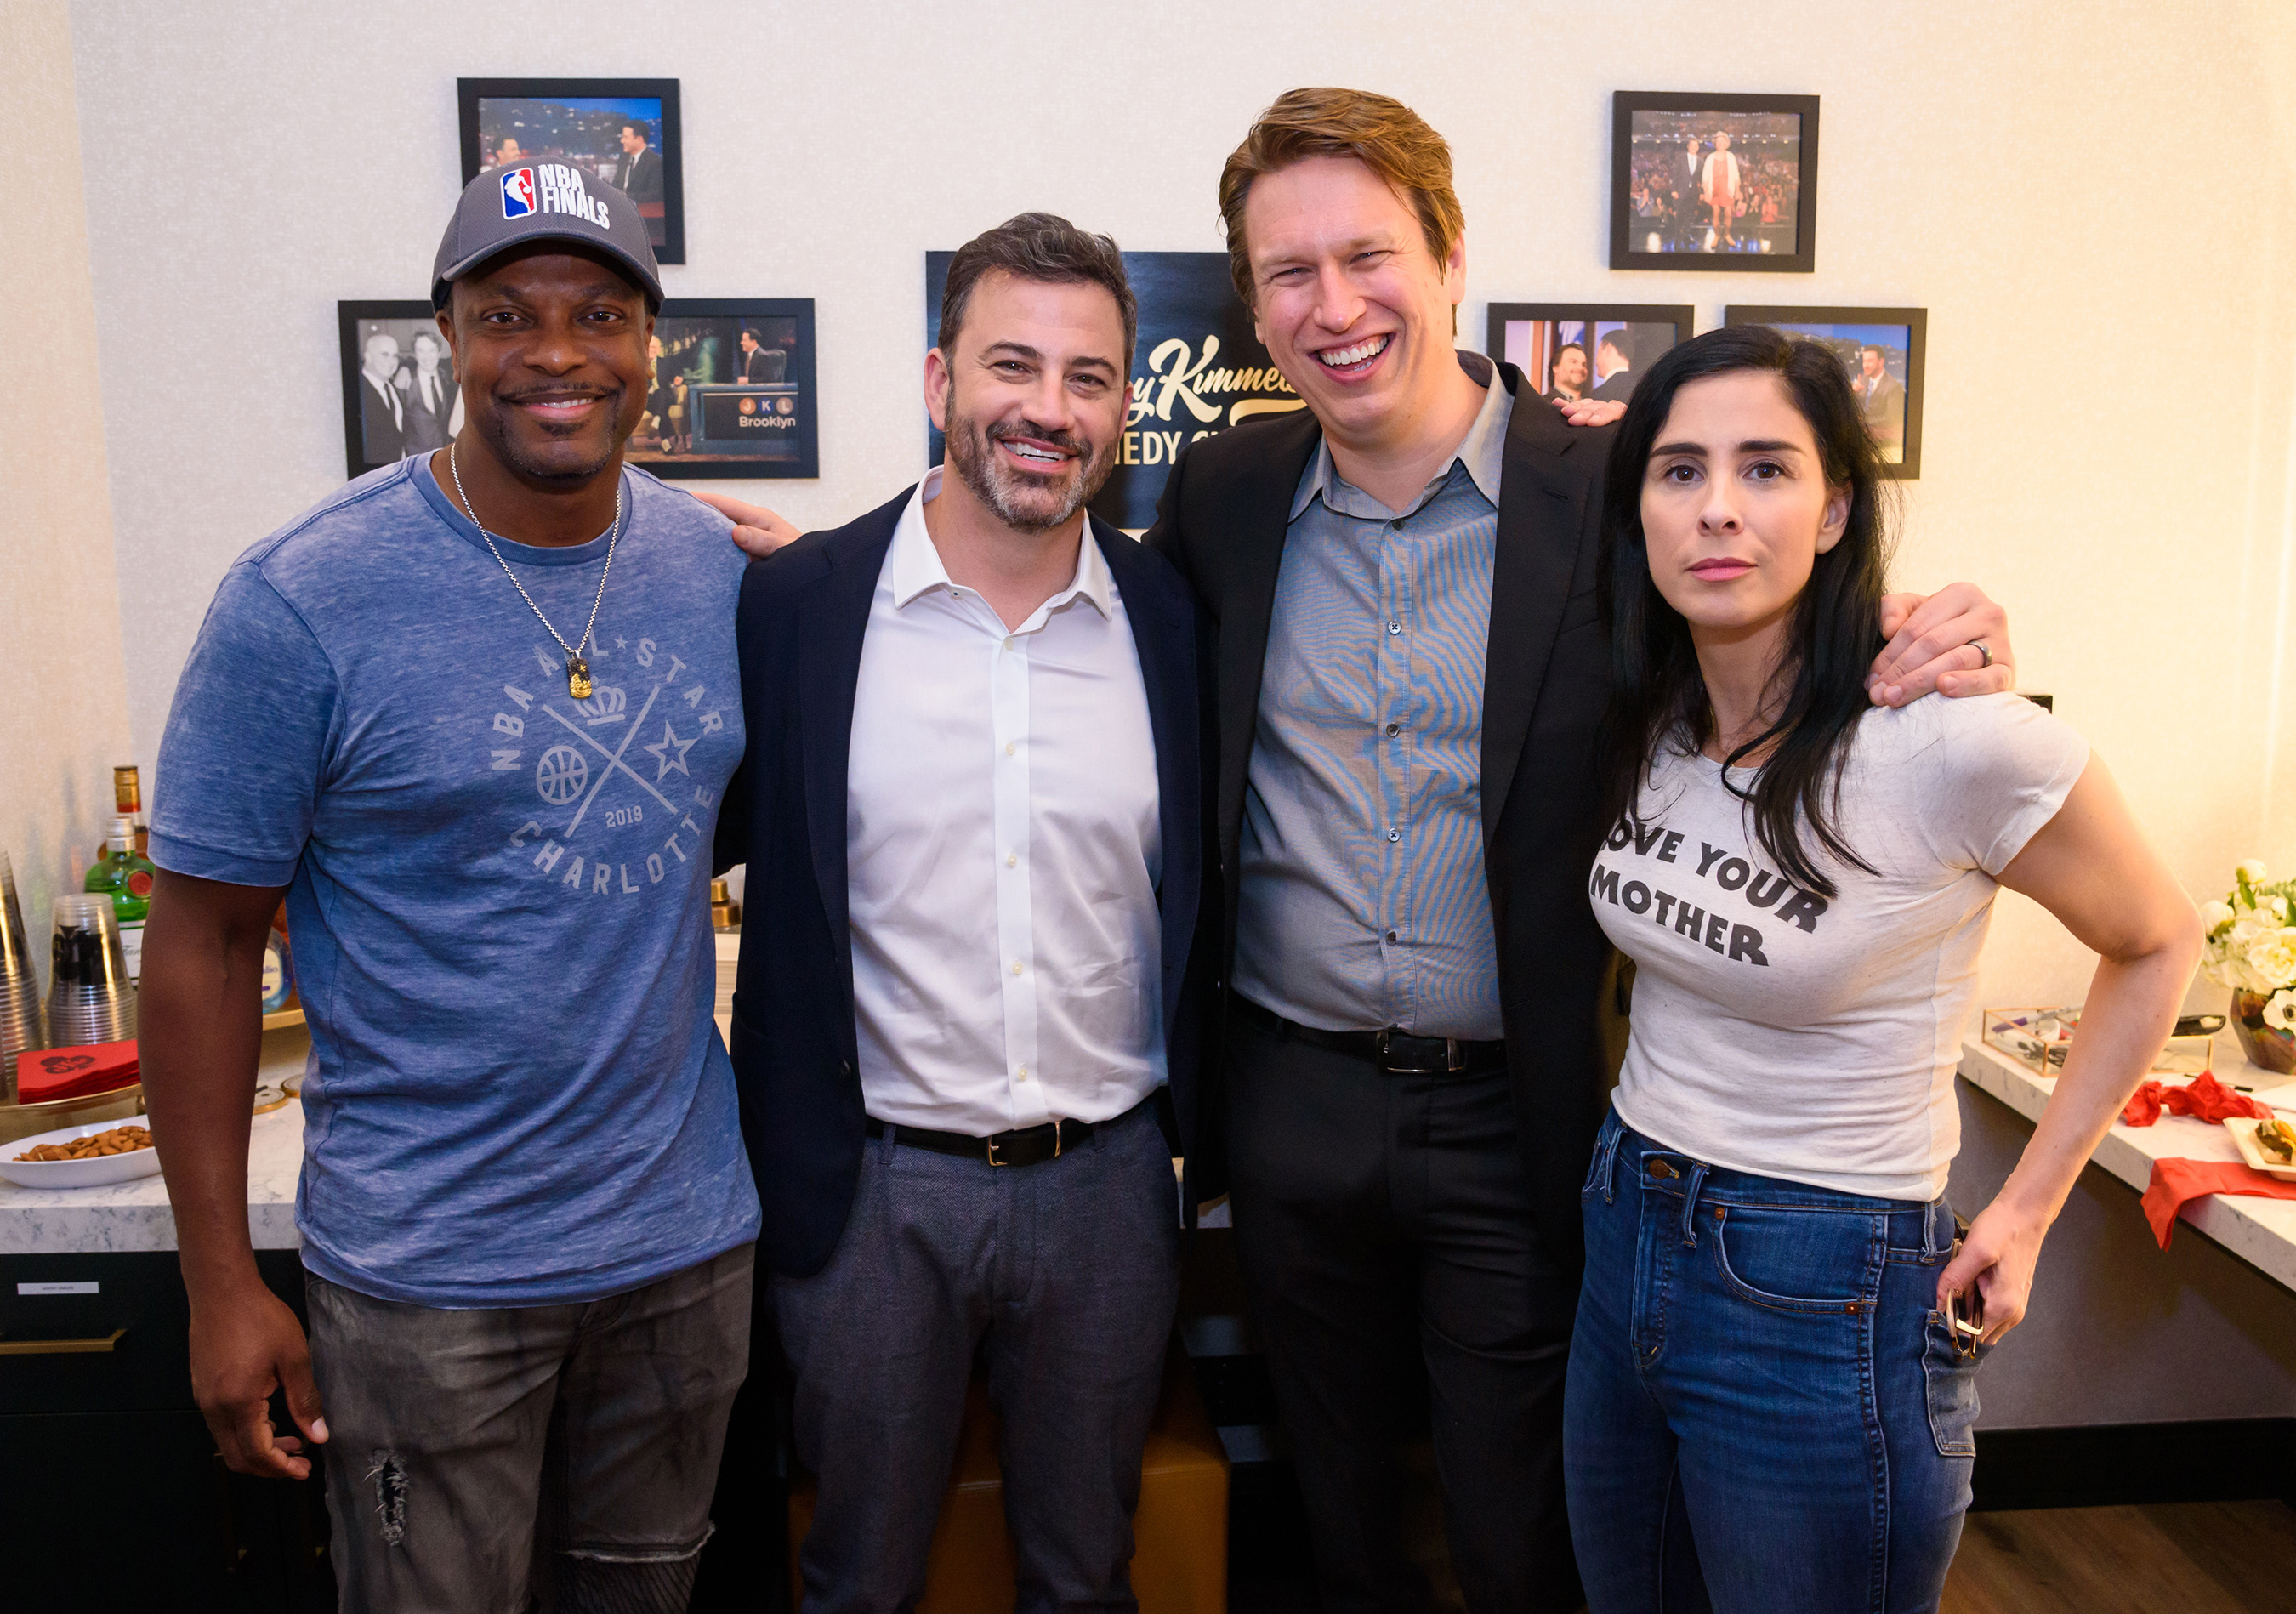 Jimmy Kimmel's Comedy Club Grand Opening - Chris Tucker, Jimmy Kimmel, Pete Holmes, Sarah Silverman (Photo Credit: Kabik Photo Group)